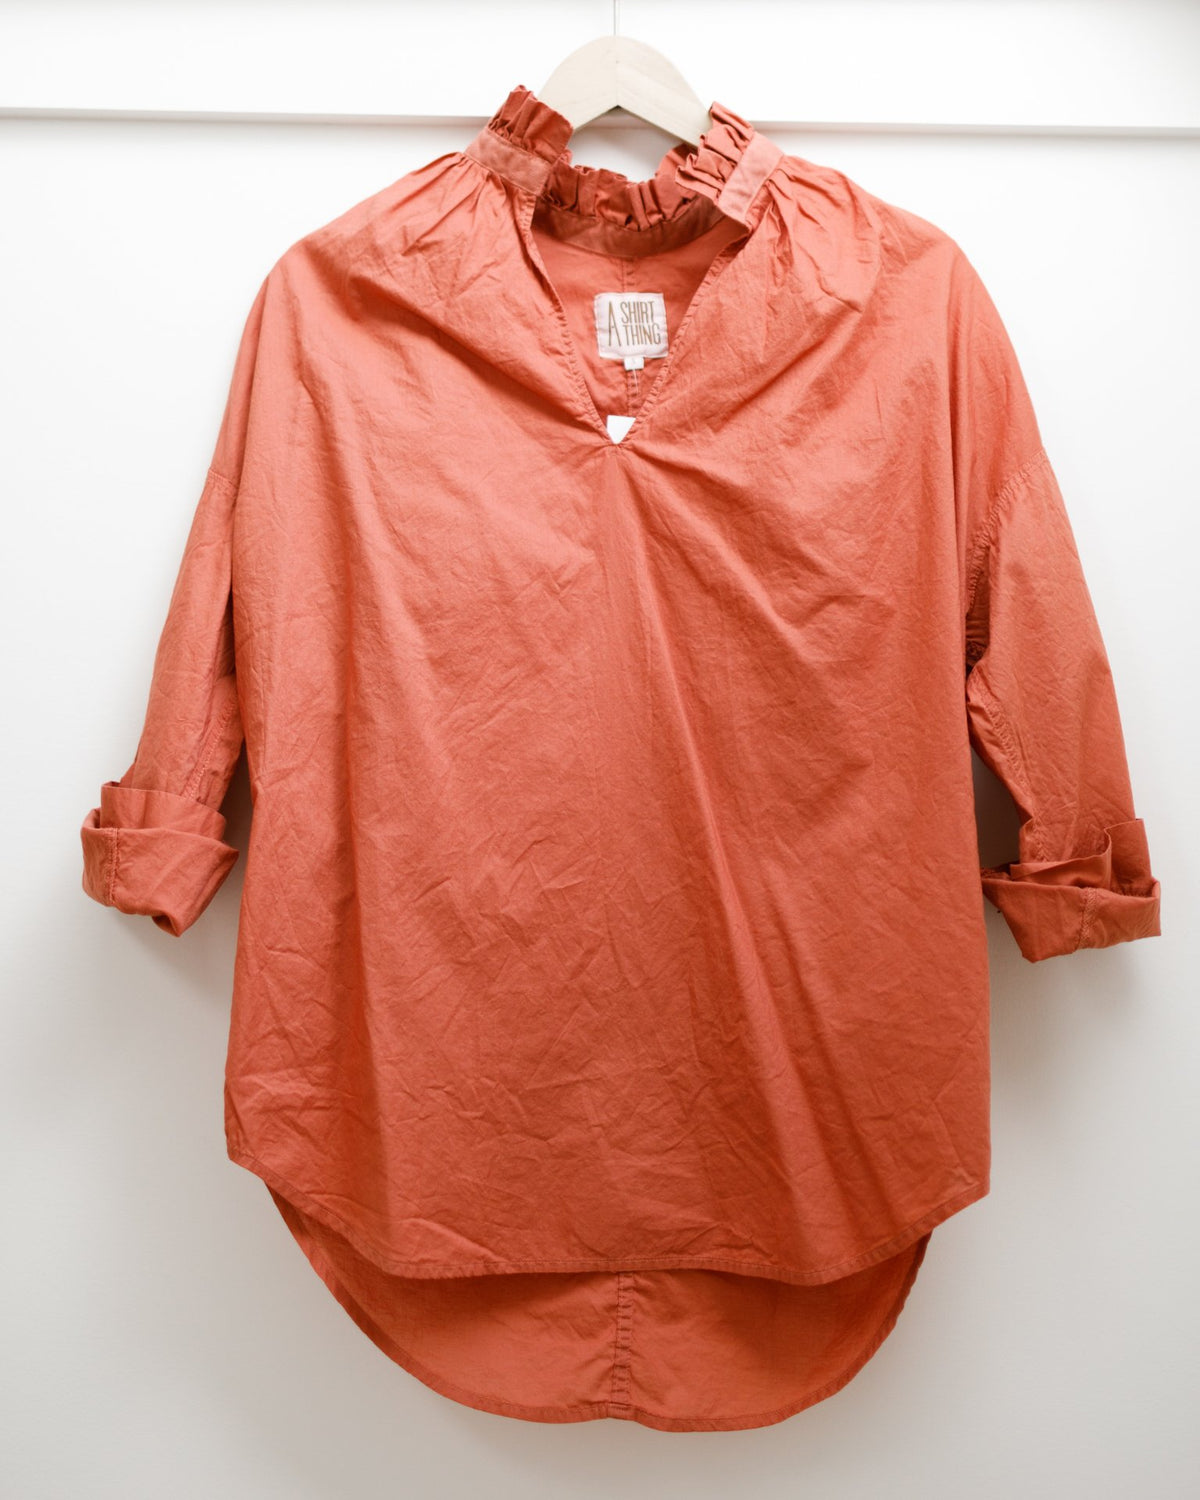 A Shirt Thing Clothing Penelope - Cabo - Salmon